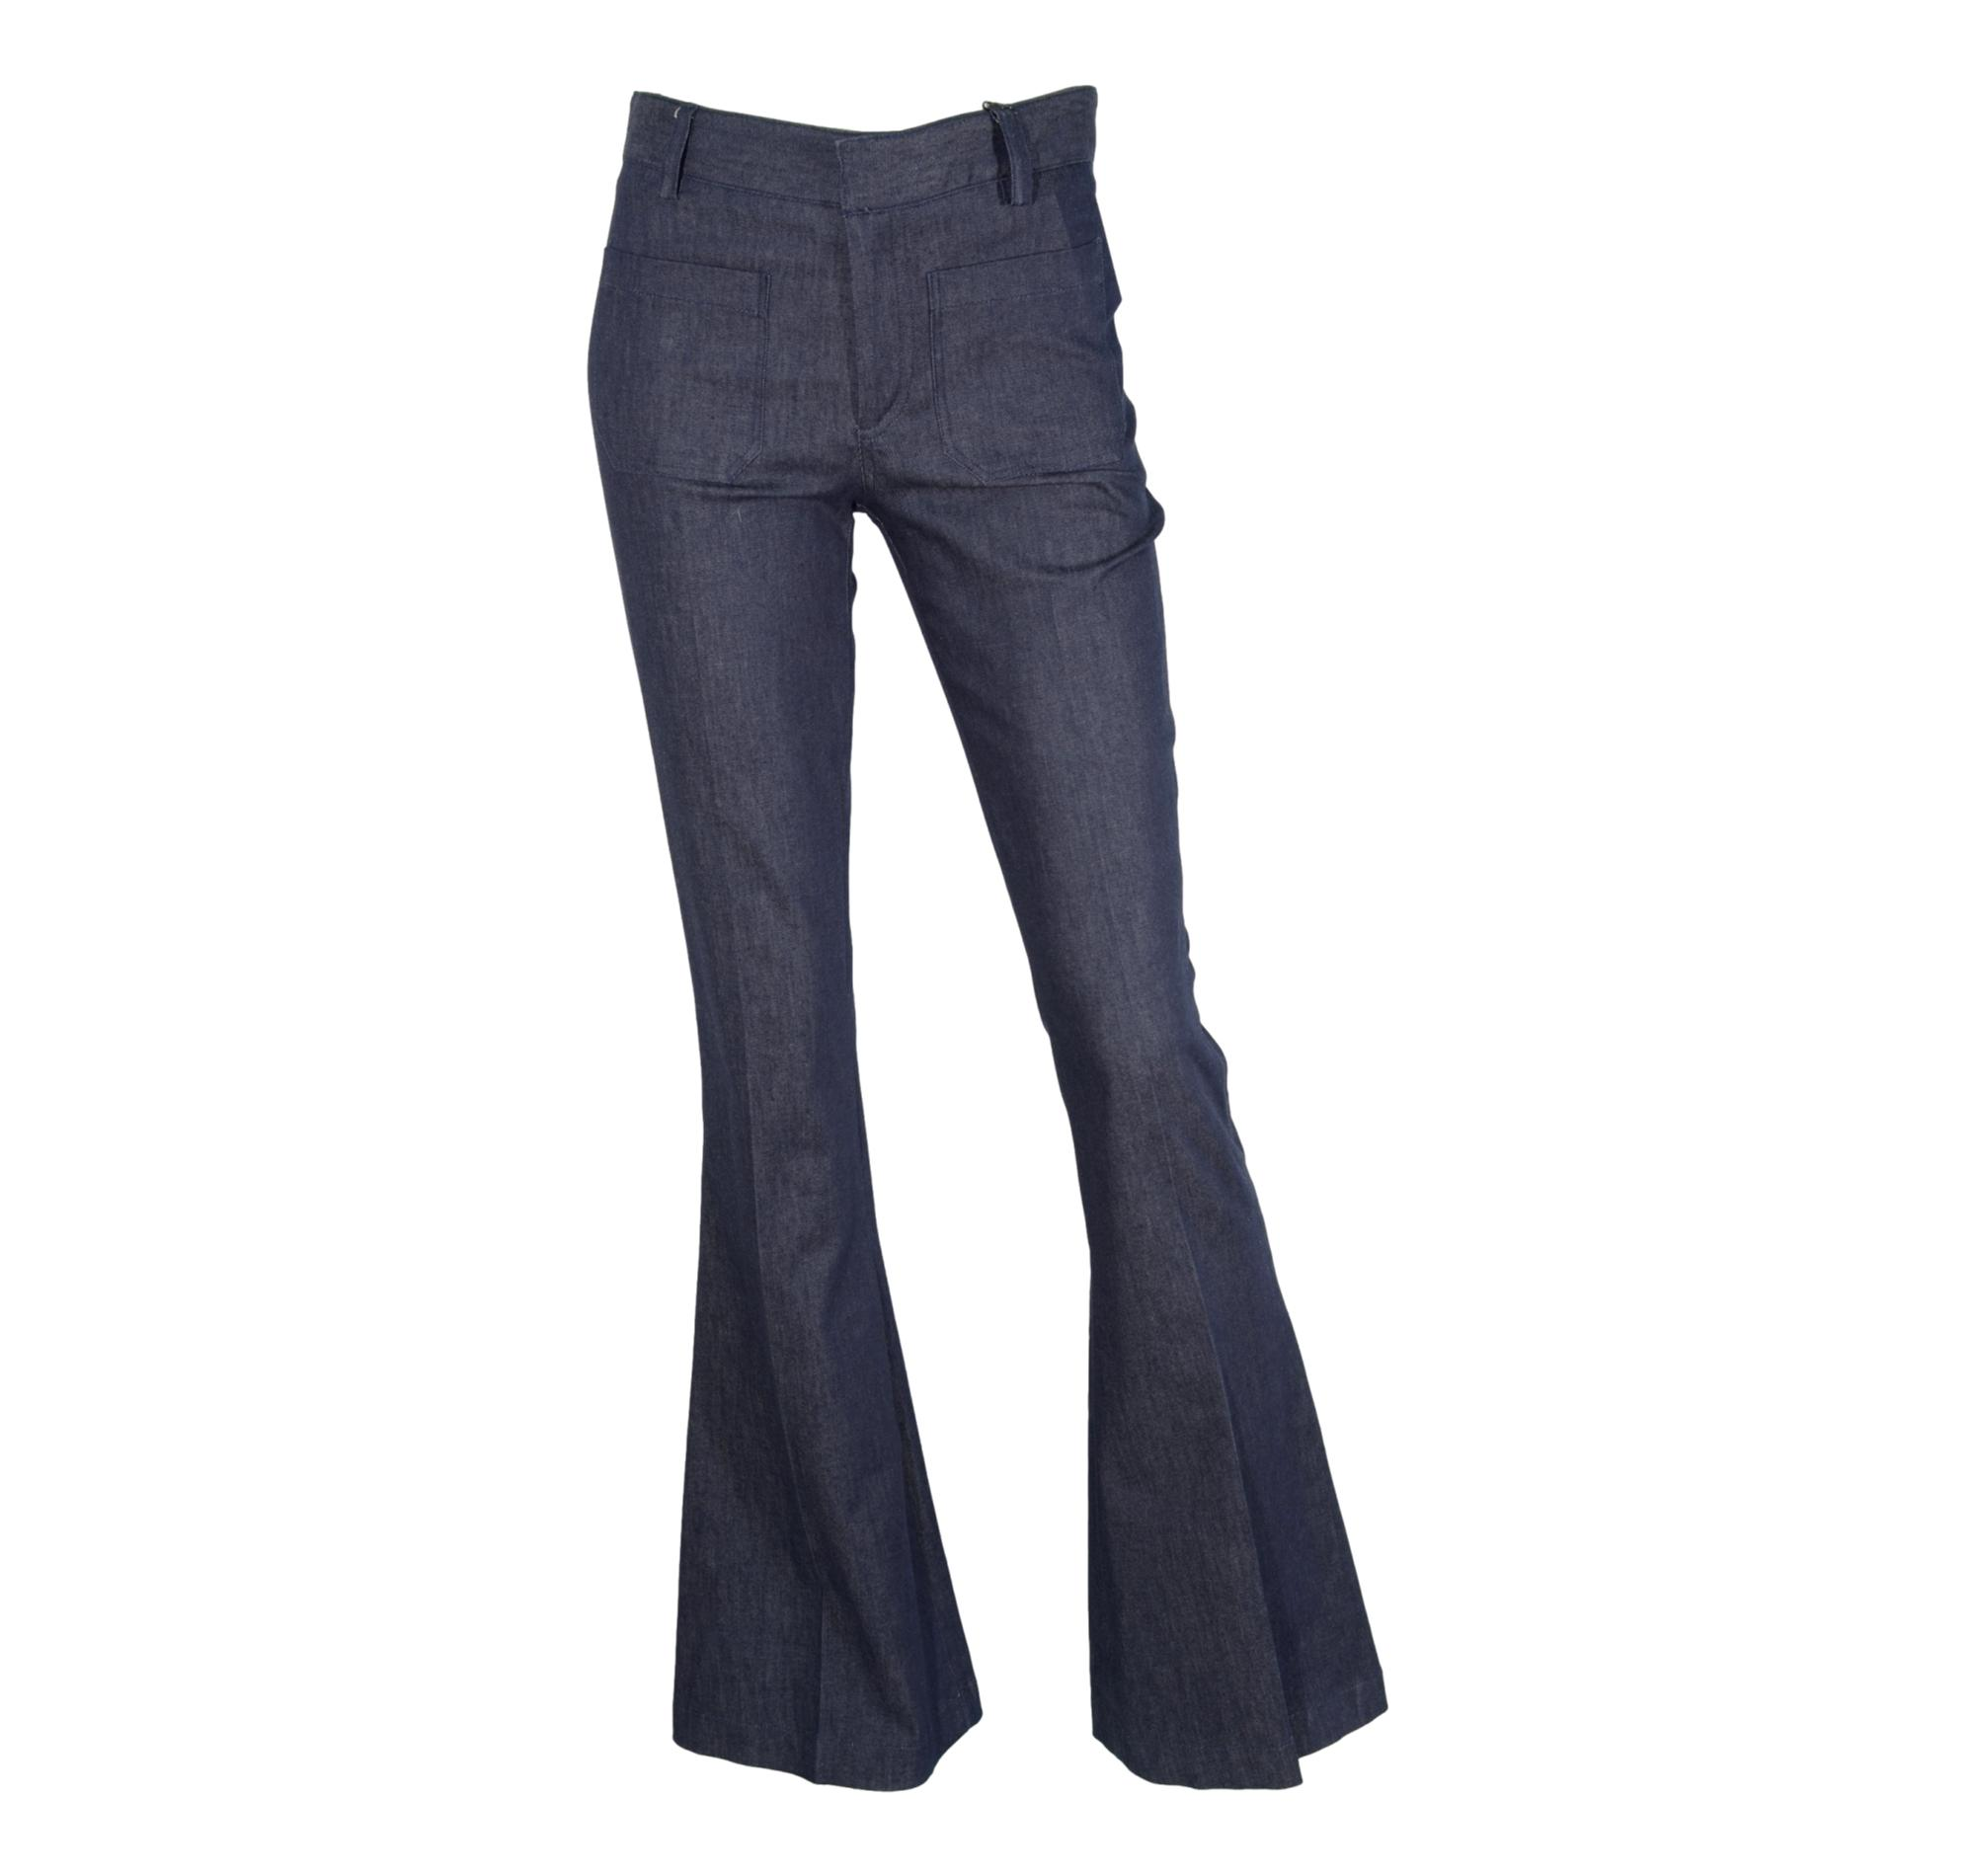 CHIARA B. JEANS DONNA COLORE BLU DENIM art. flarted